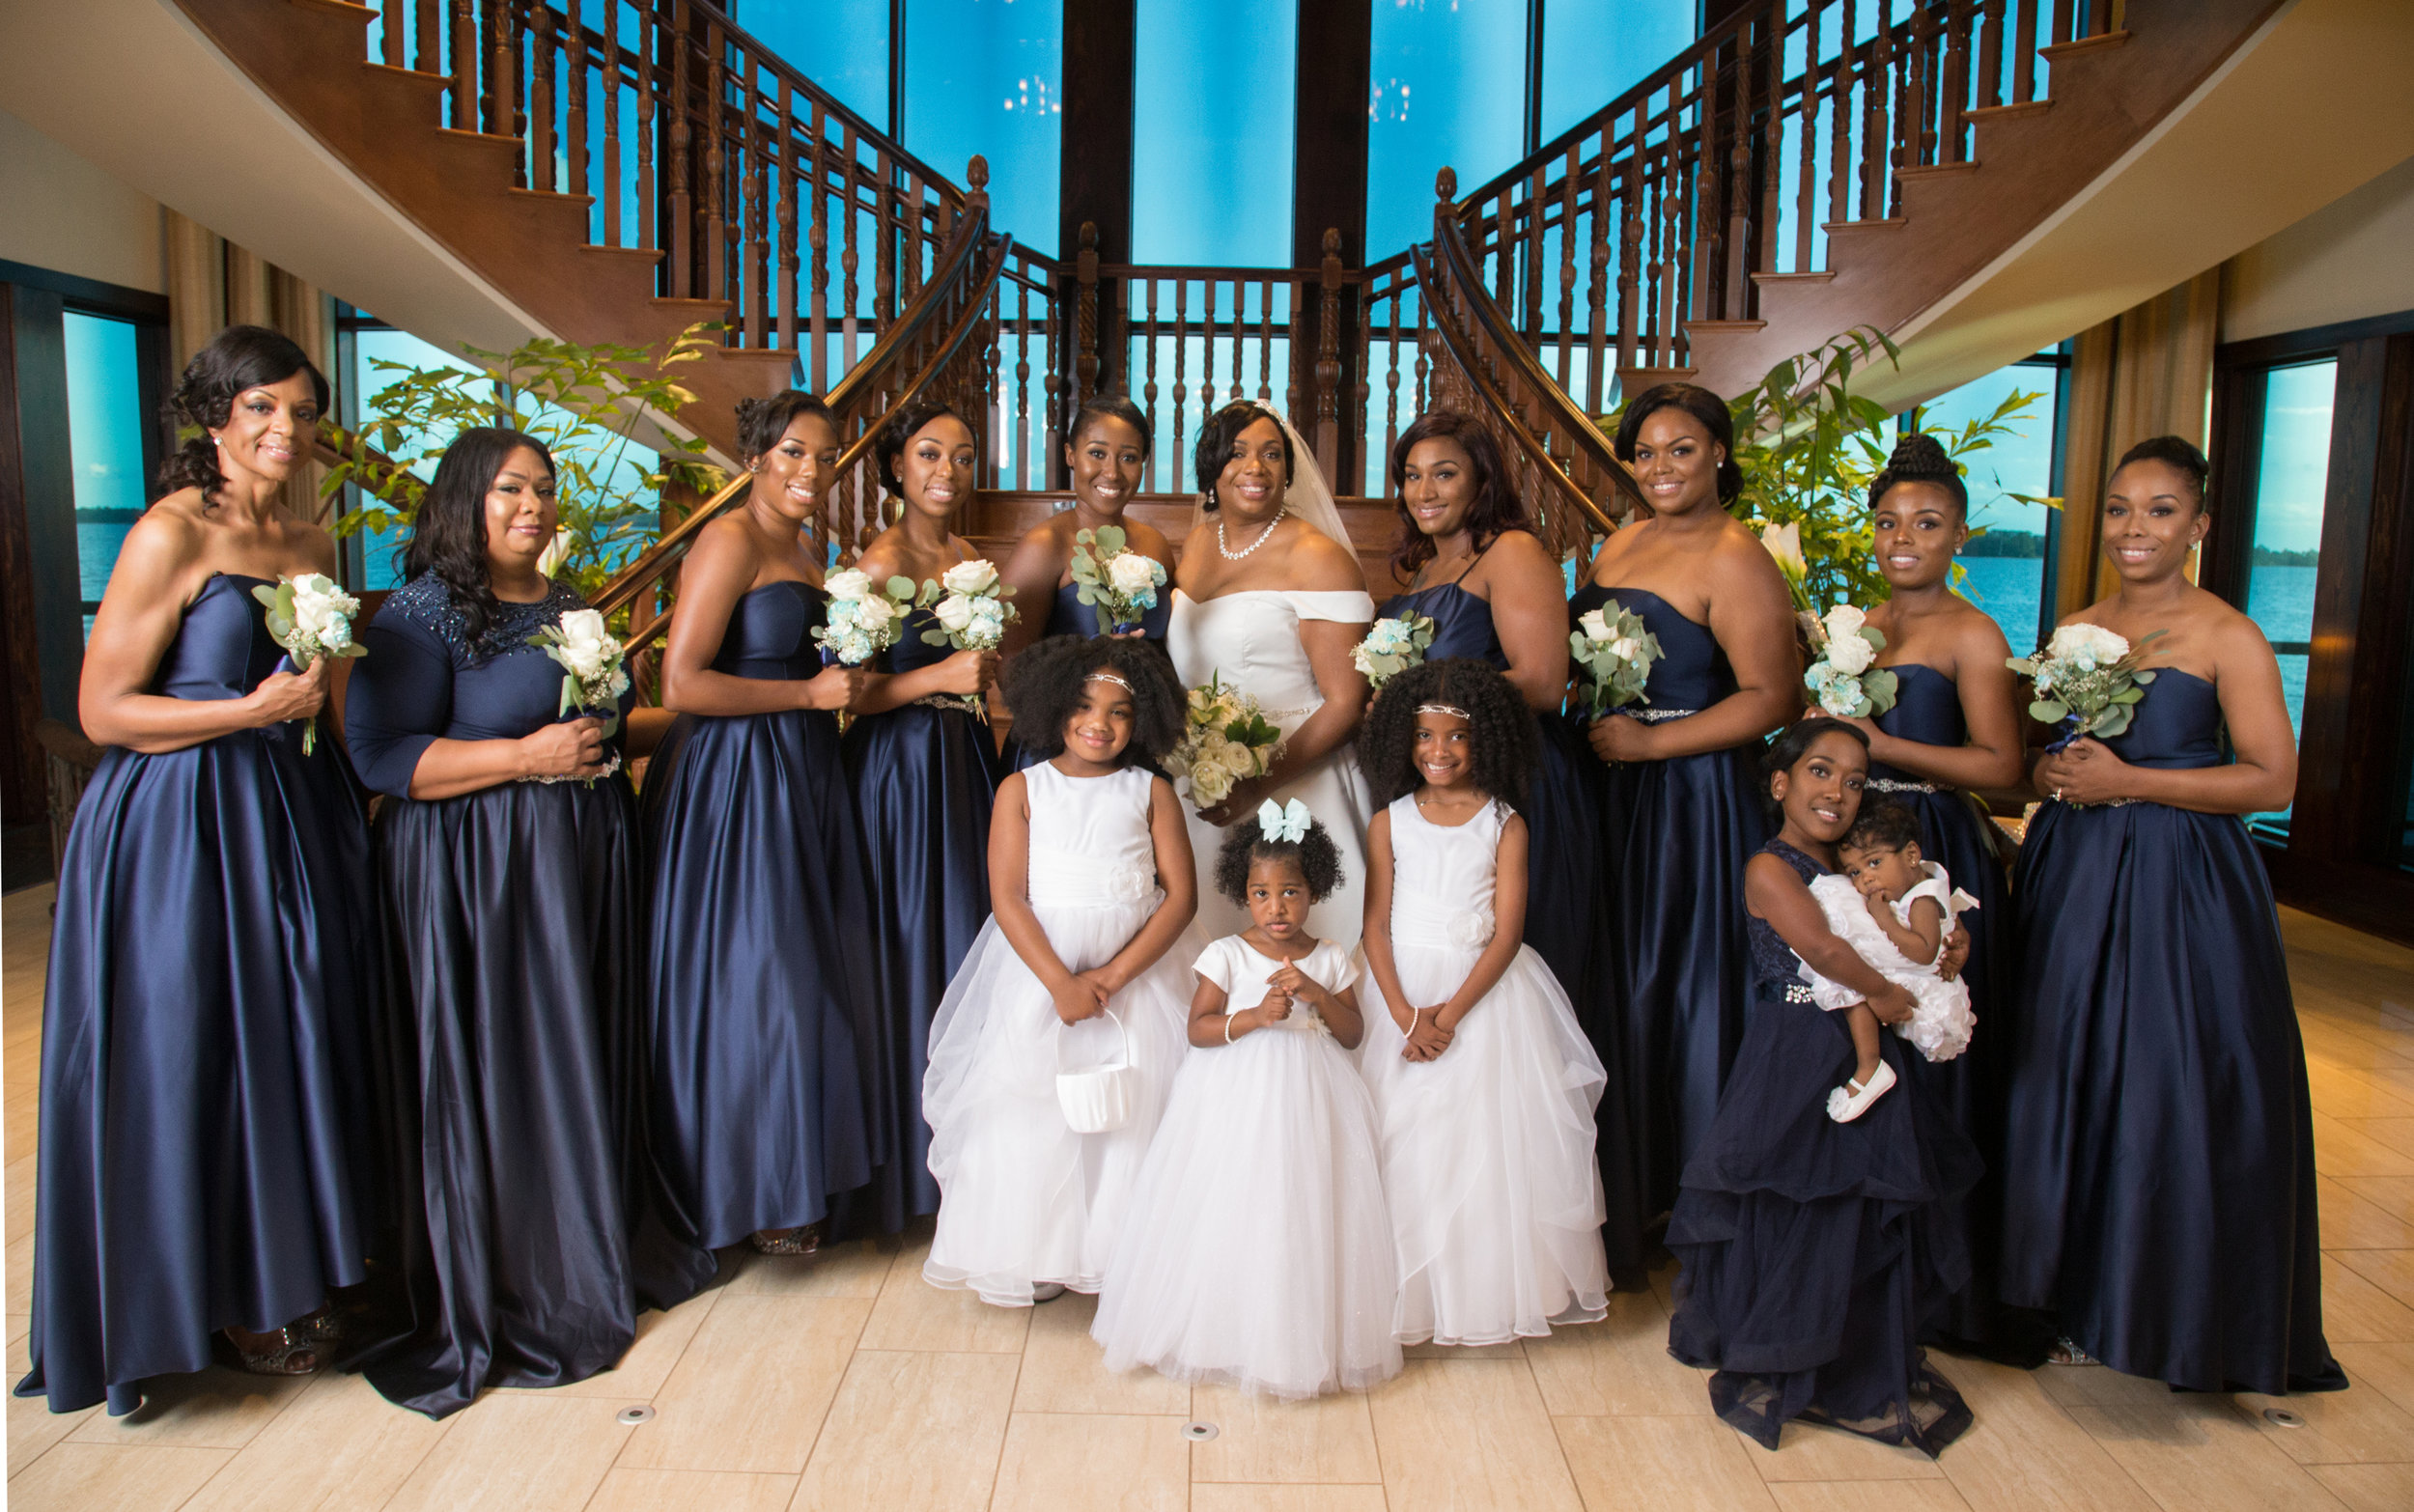 Lovely Bridal party at Tavares Pavilion on the Lake - Chamber Photography Moments by Antoine Hart